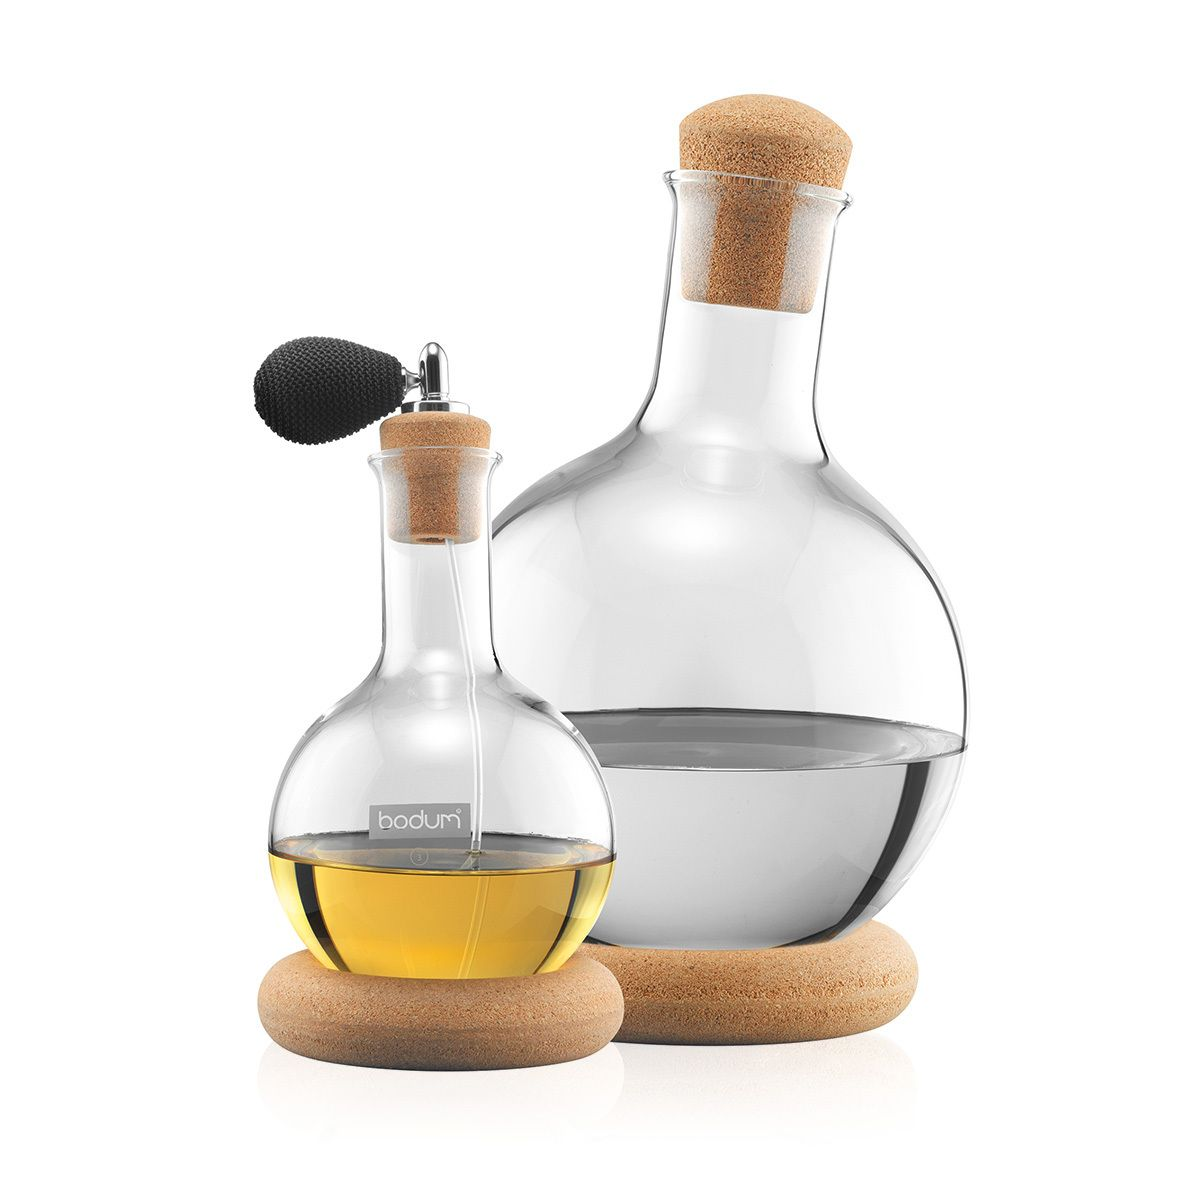 decanter Bodum